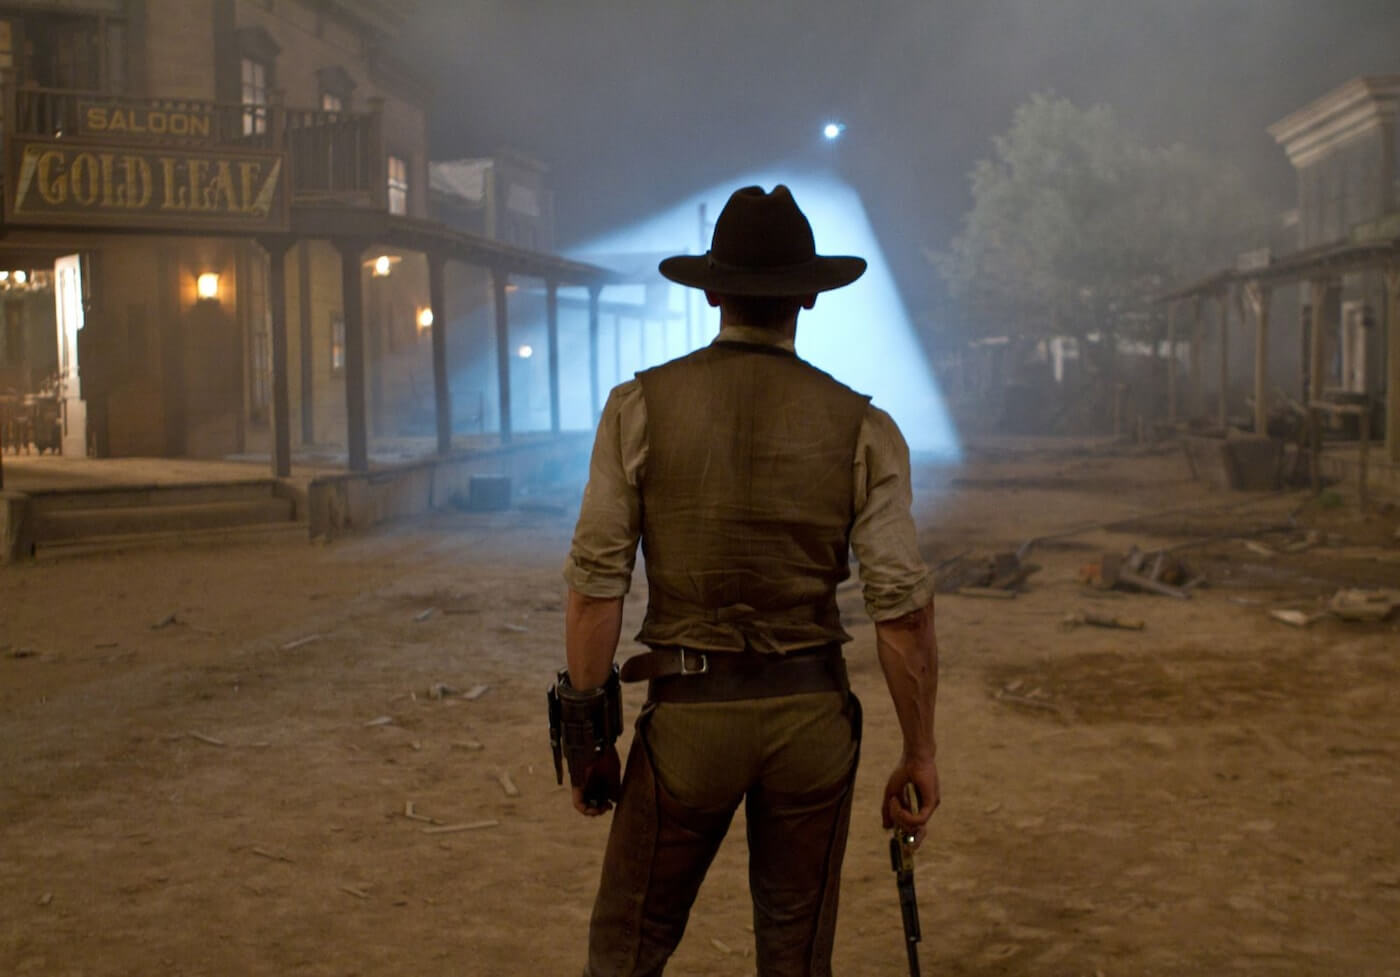 Ultimate Guide To Camera Shots - Medium Long Shot In Cowboys And Aliens